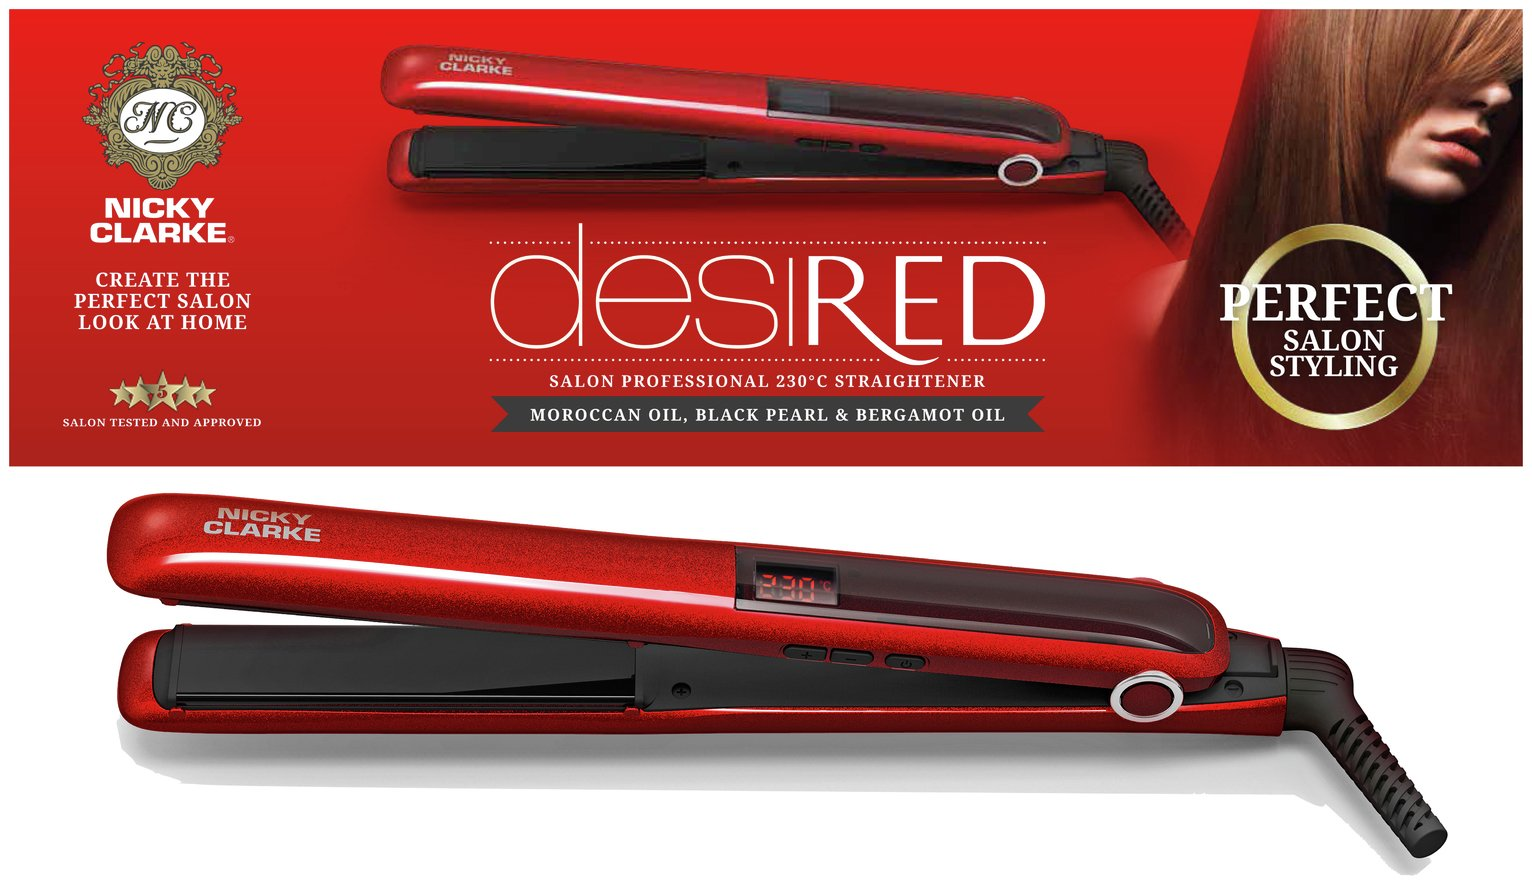 Nicky Clarke ISS248 DesiRED Salon Pro 230 Straightener.